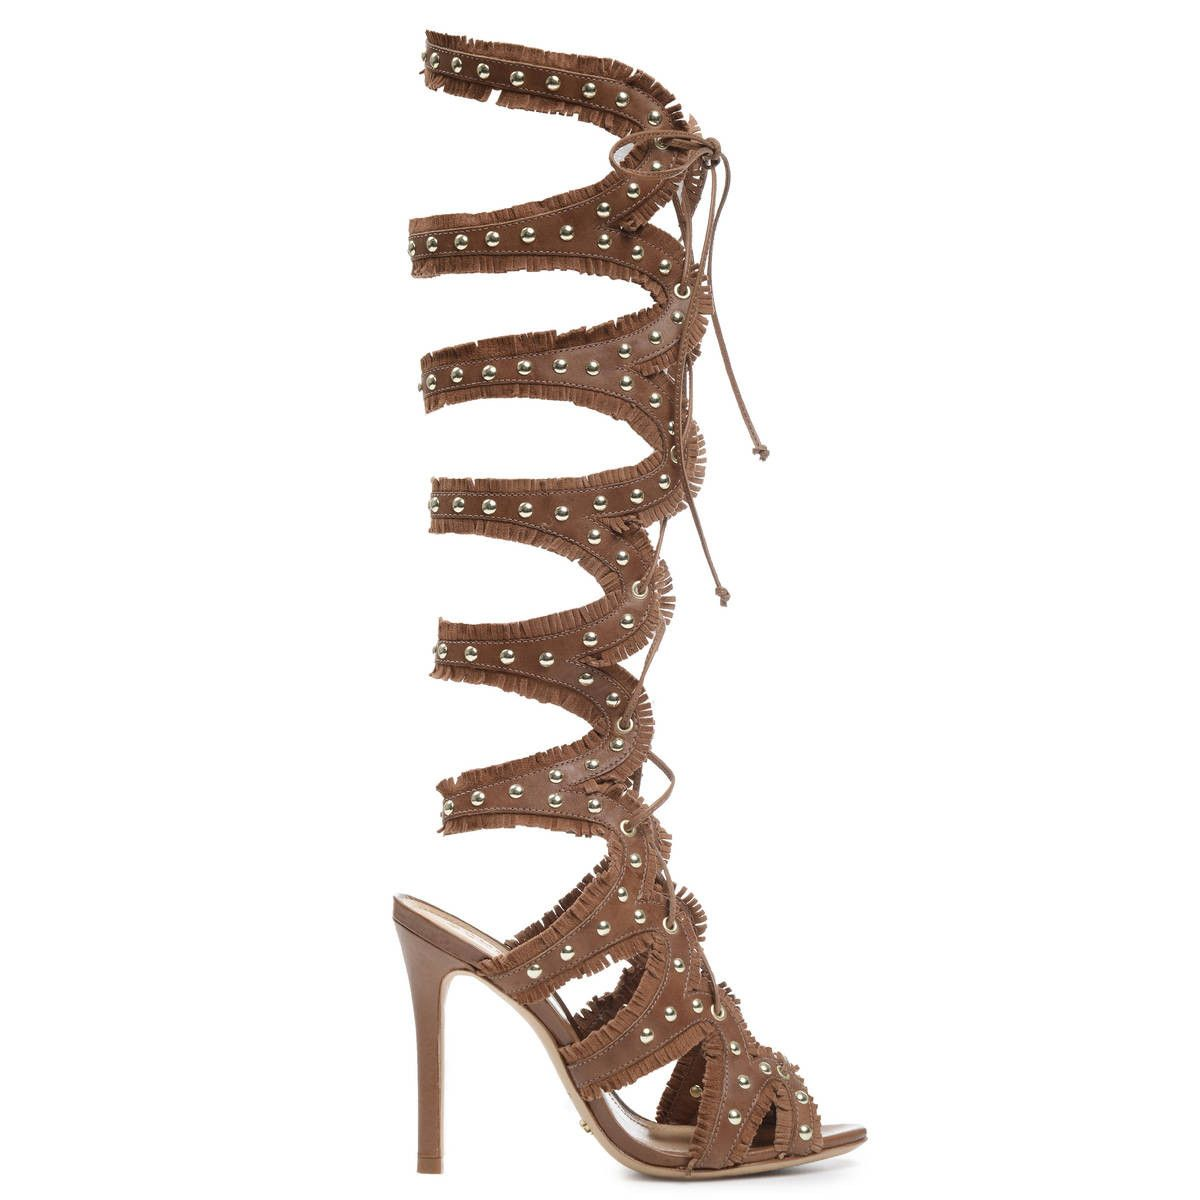 Schutz Nini Tan Cut-Out Stiletto Knee-High Lace-Up Gold Studded Fringe Stiletto Cut-Out Sandals 9e8bcd